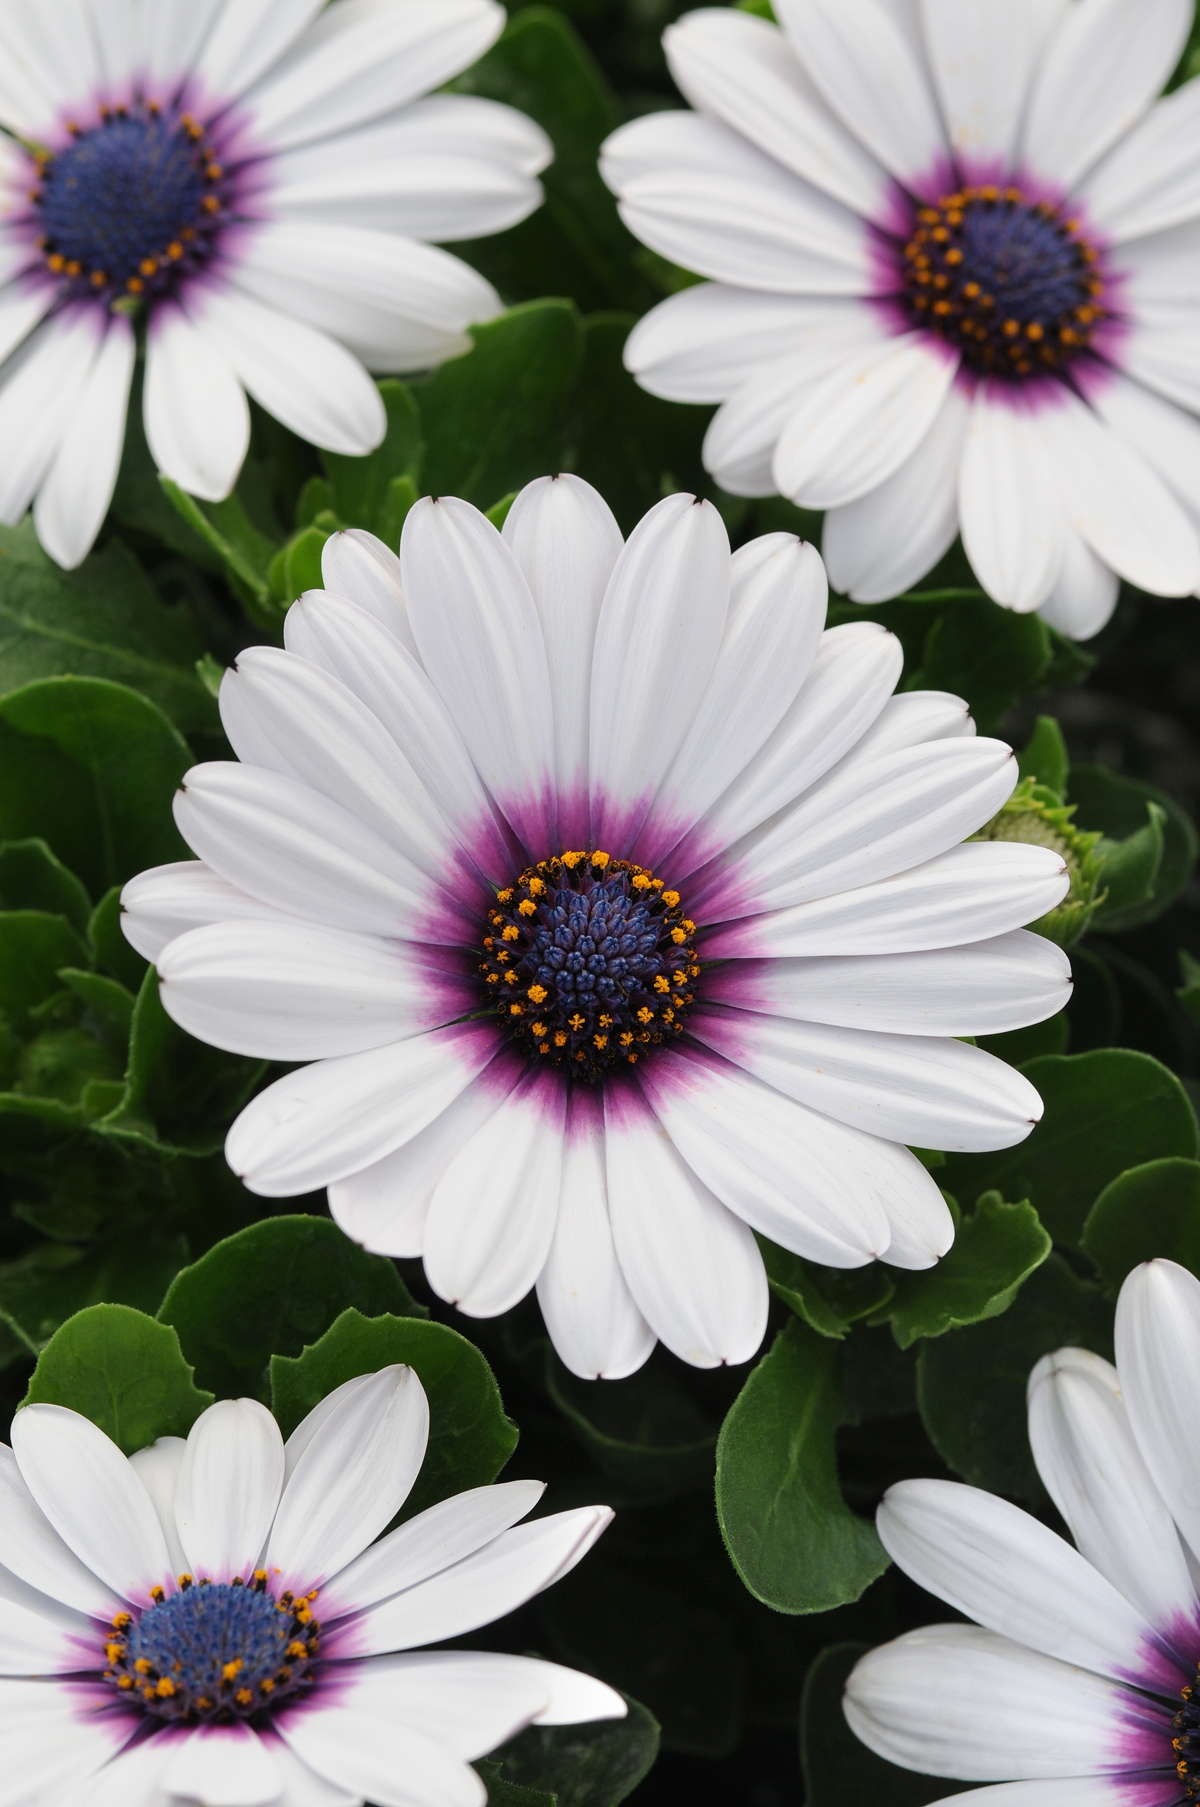 Focus On Fertility: Osteospermum